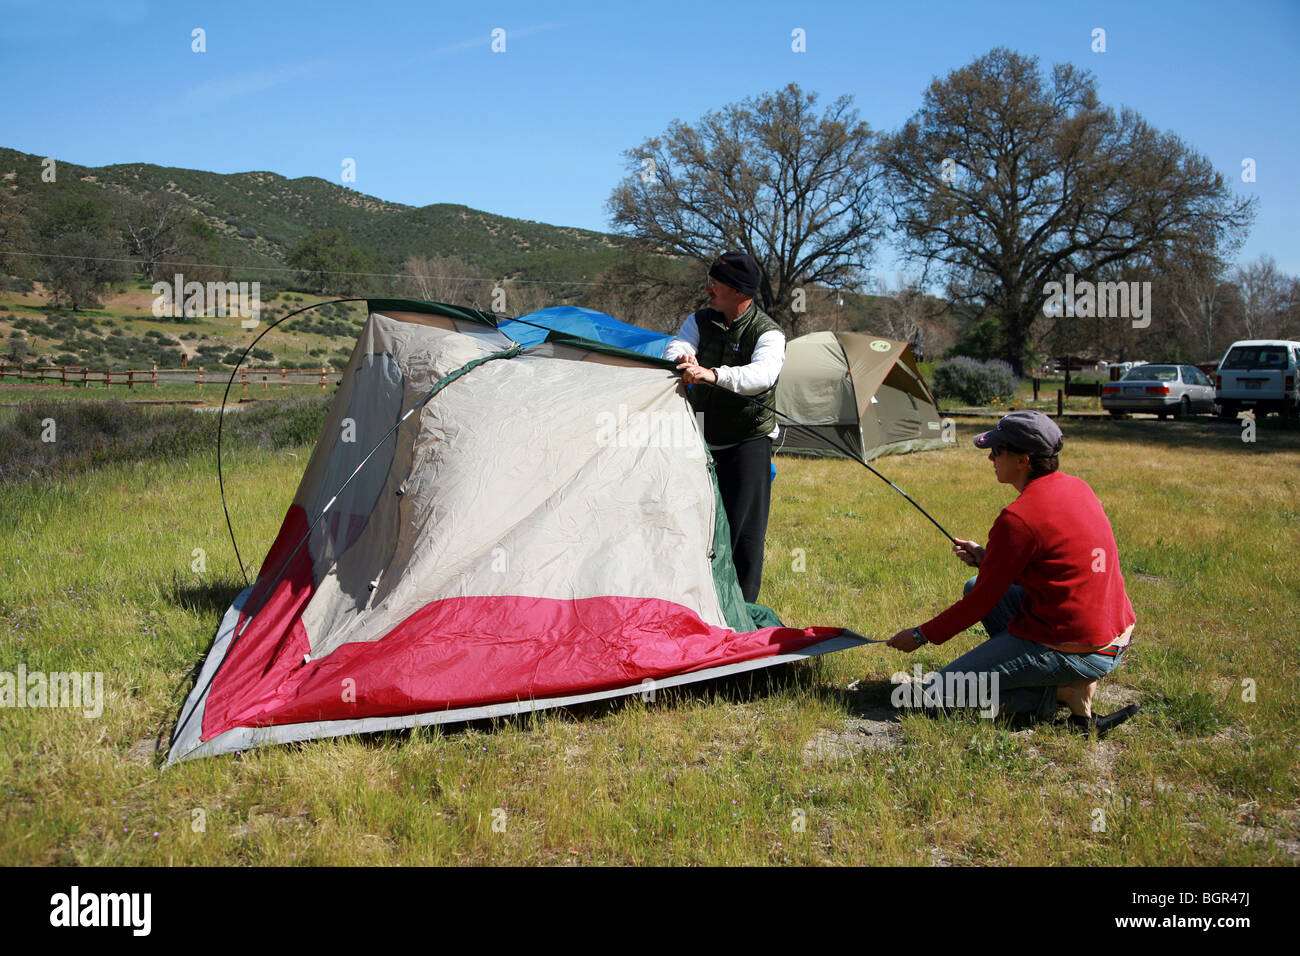 a man and woman camping and building a tent outdoors stock photo royalty free image 27553110. Black Bedroom Furniture Sets. Home Design Ideas